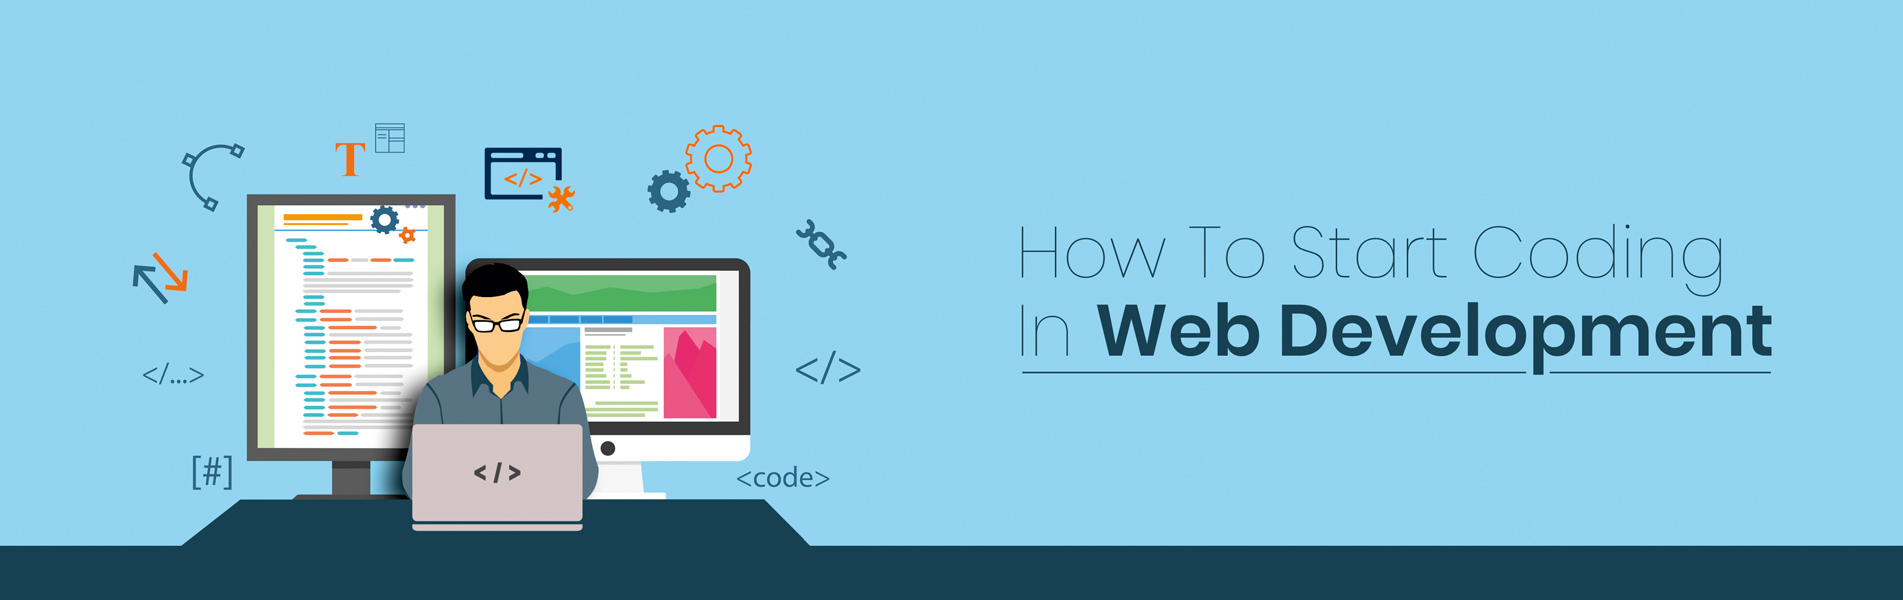 How to Start Coding in Web Development